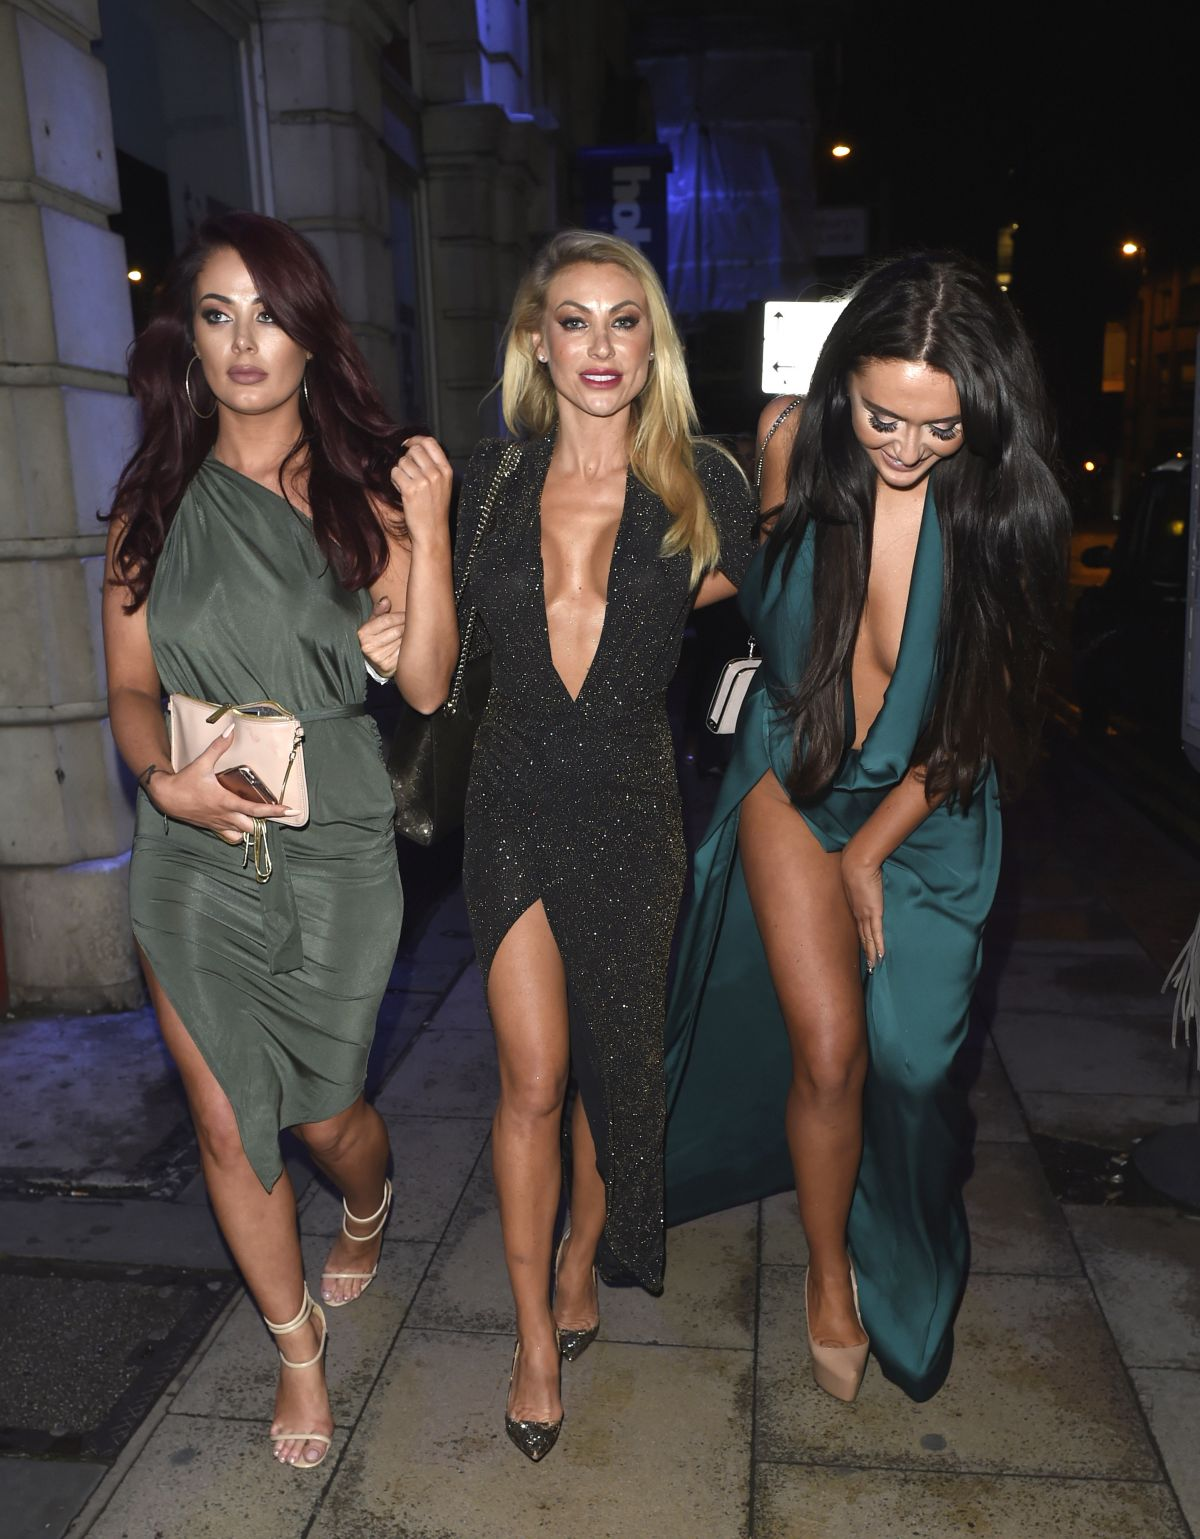 JESSICA HAYES and CHARLOTTE DAWSON at Milton Club in Manchester 06/30/2016